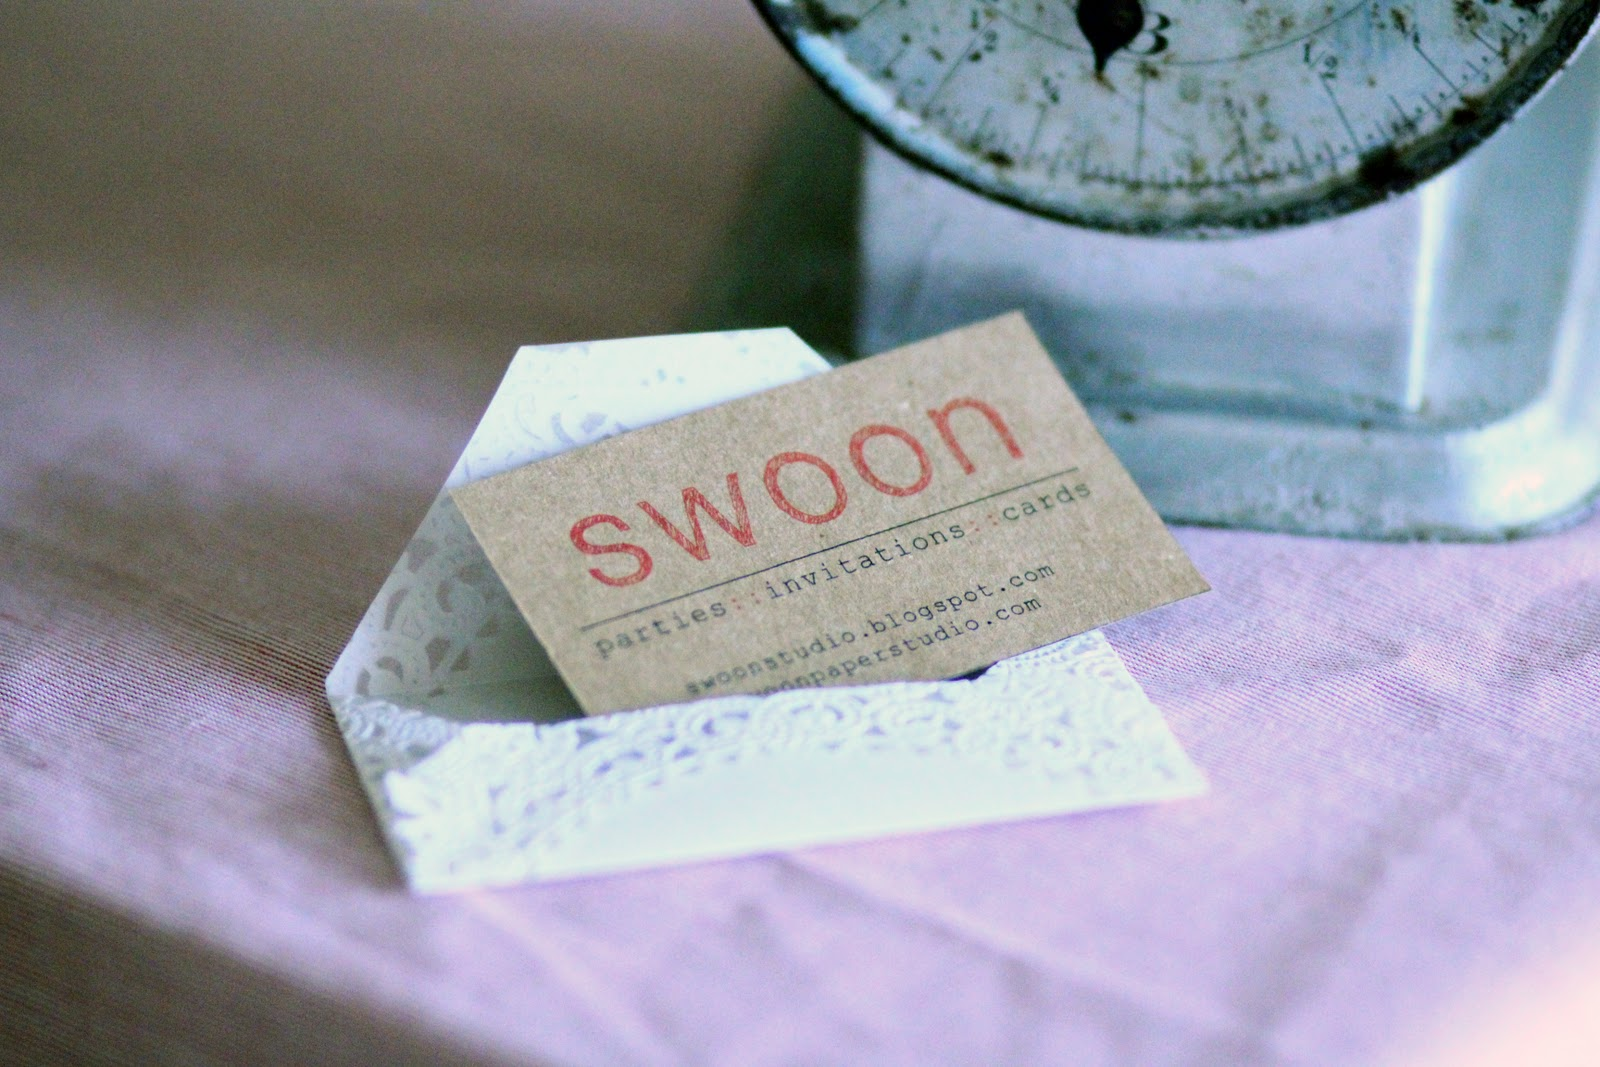 swoon studio: Business cards + Doily envelope tutorial